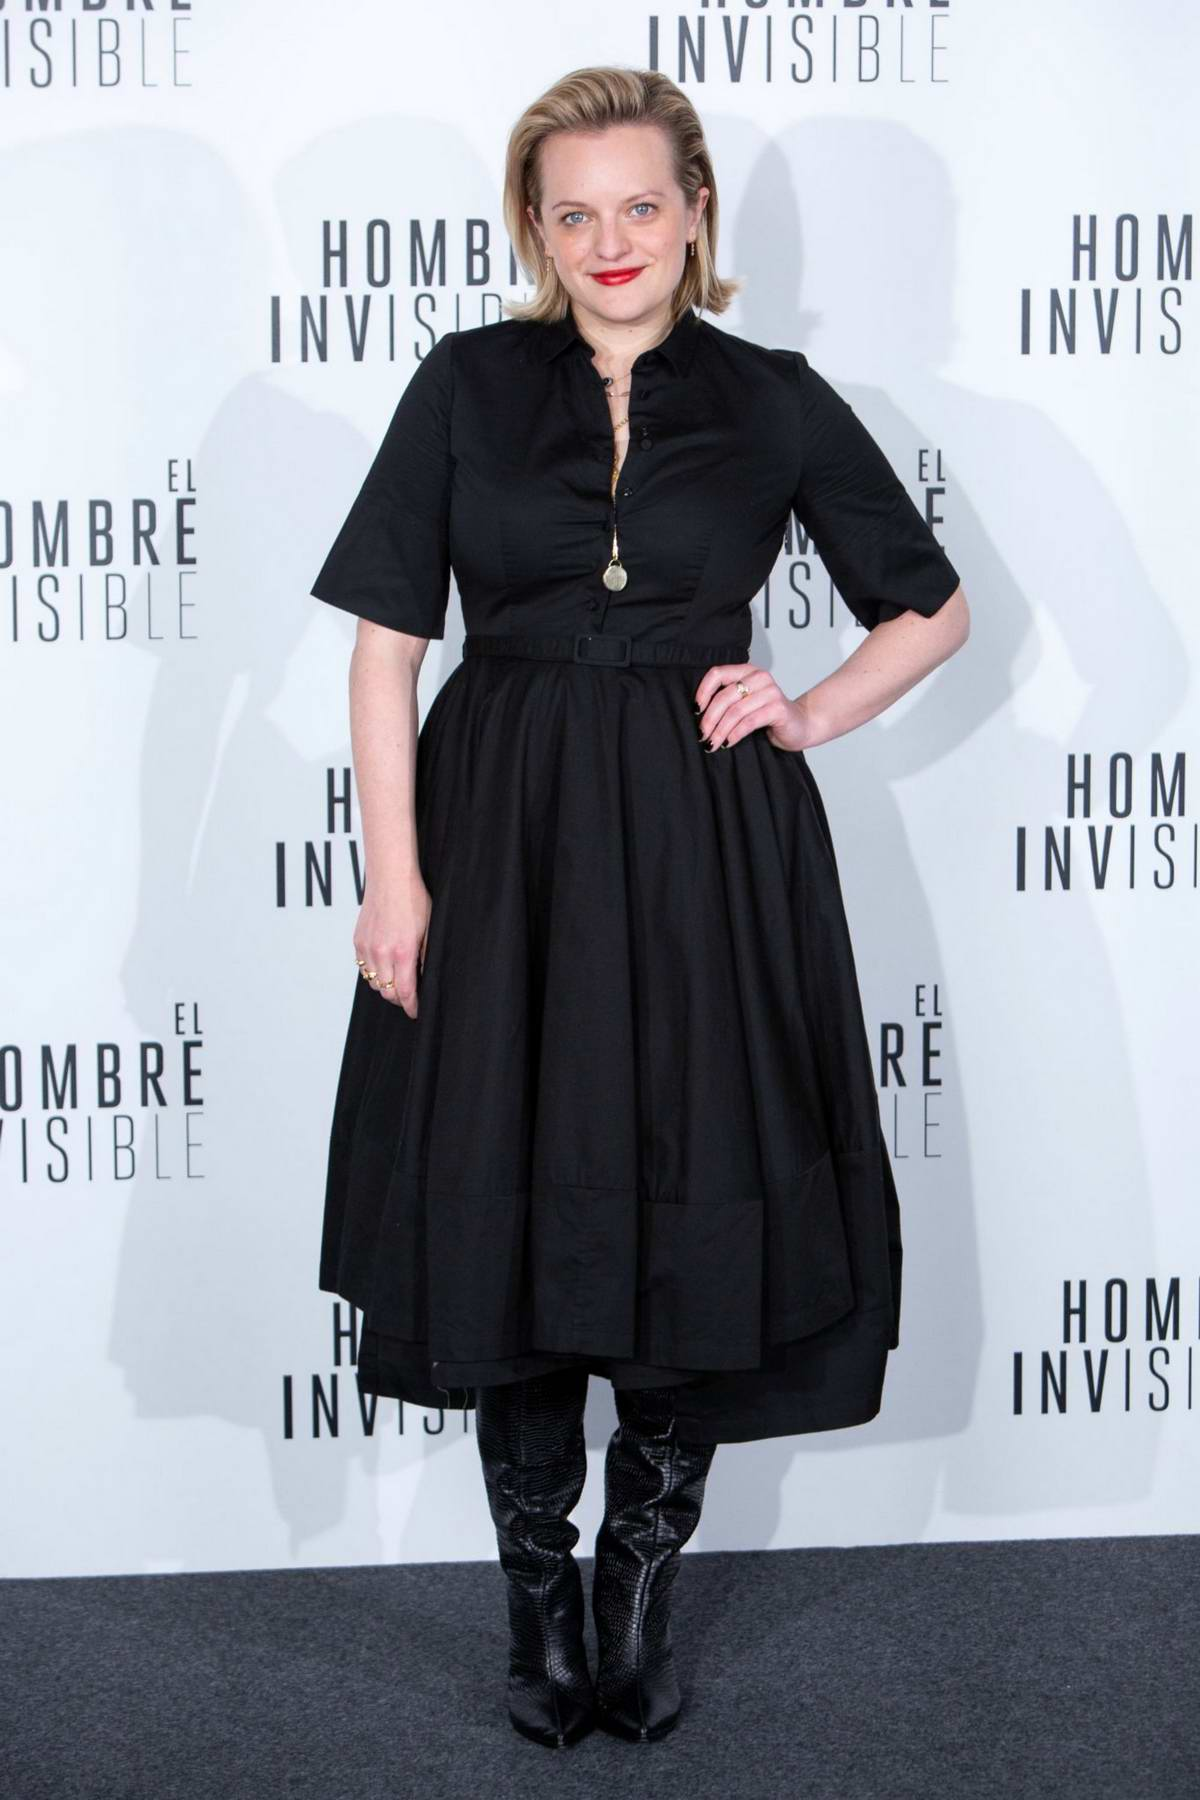 Elisabeth Moss attends the Premiere 'The Invisible Man' in Madrid, Spain